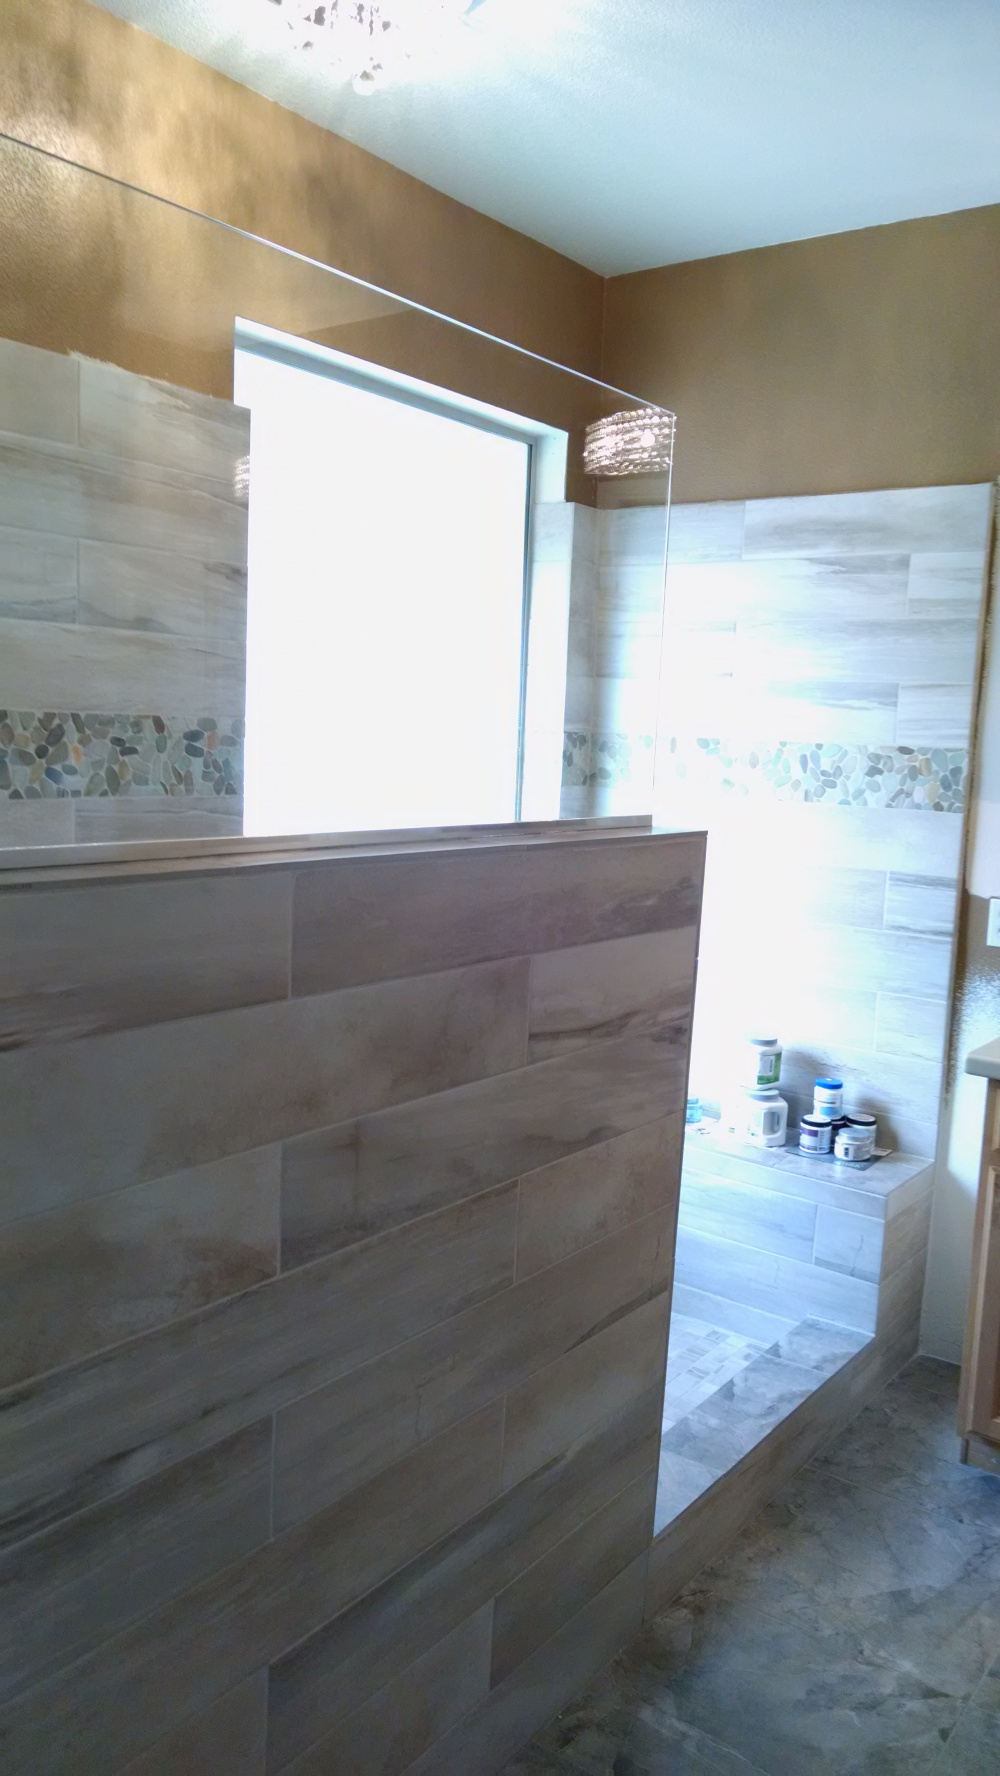 Phoenix Bathroom Remodel Captivating Home Remodeling Phoenix  Champion Remodeling Llc. 2017